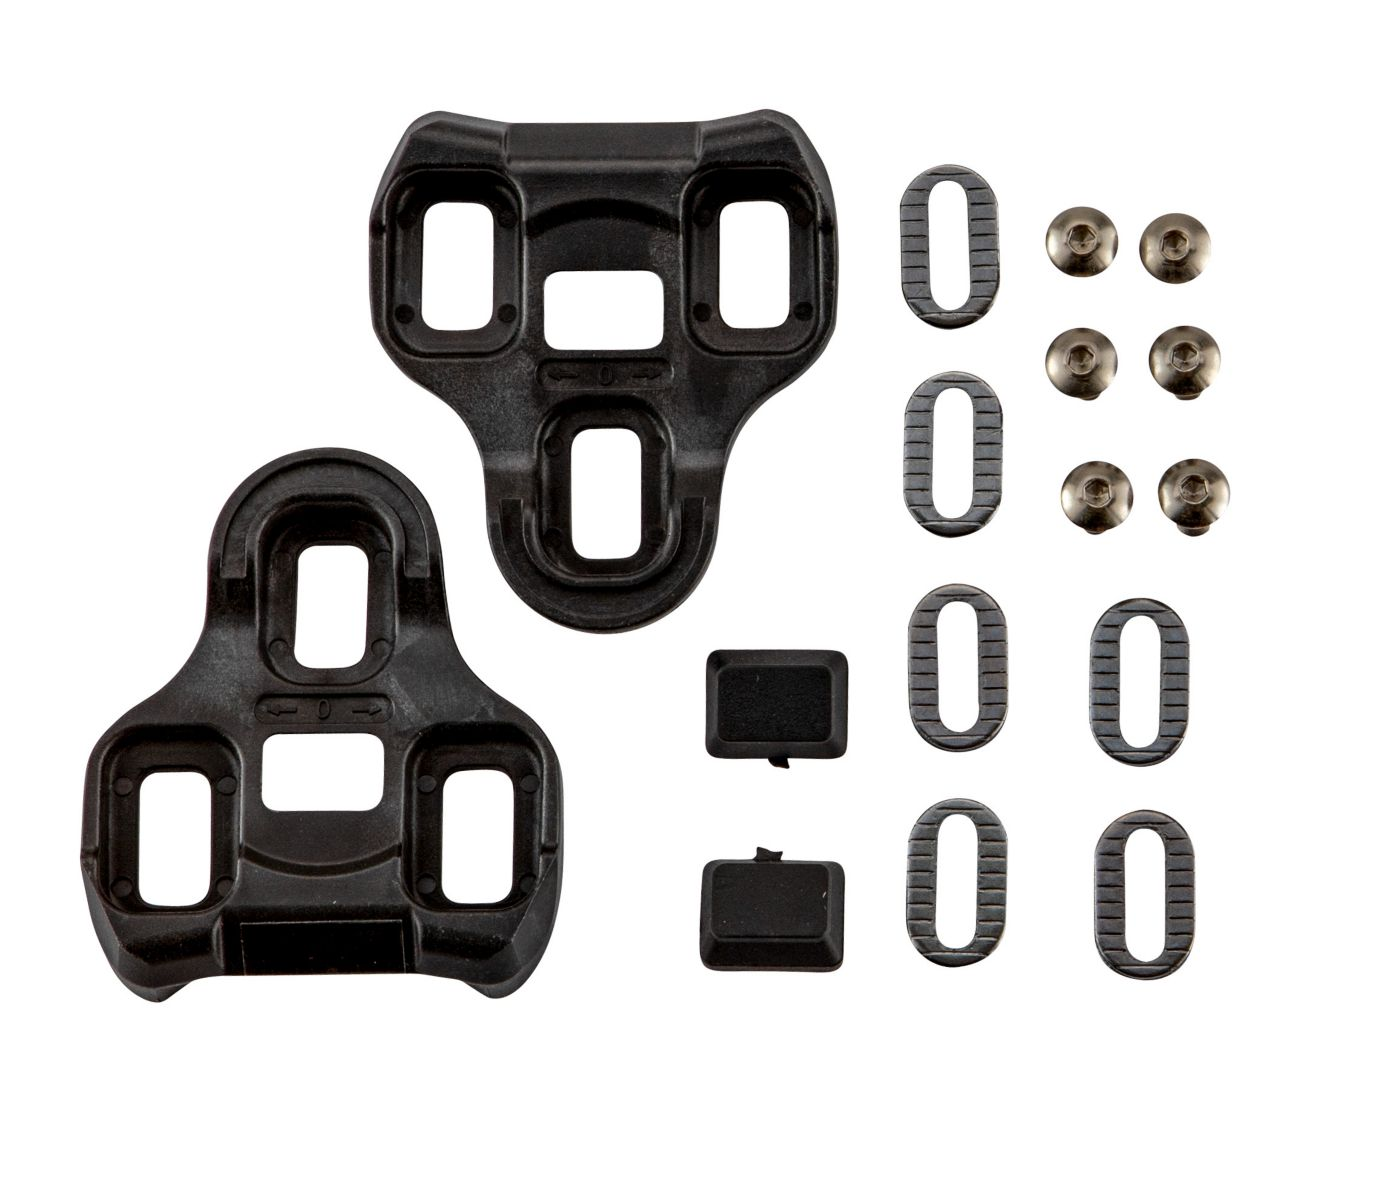 Charge Century Road Bike Pedal Cleats